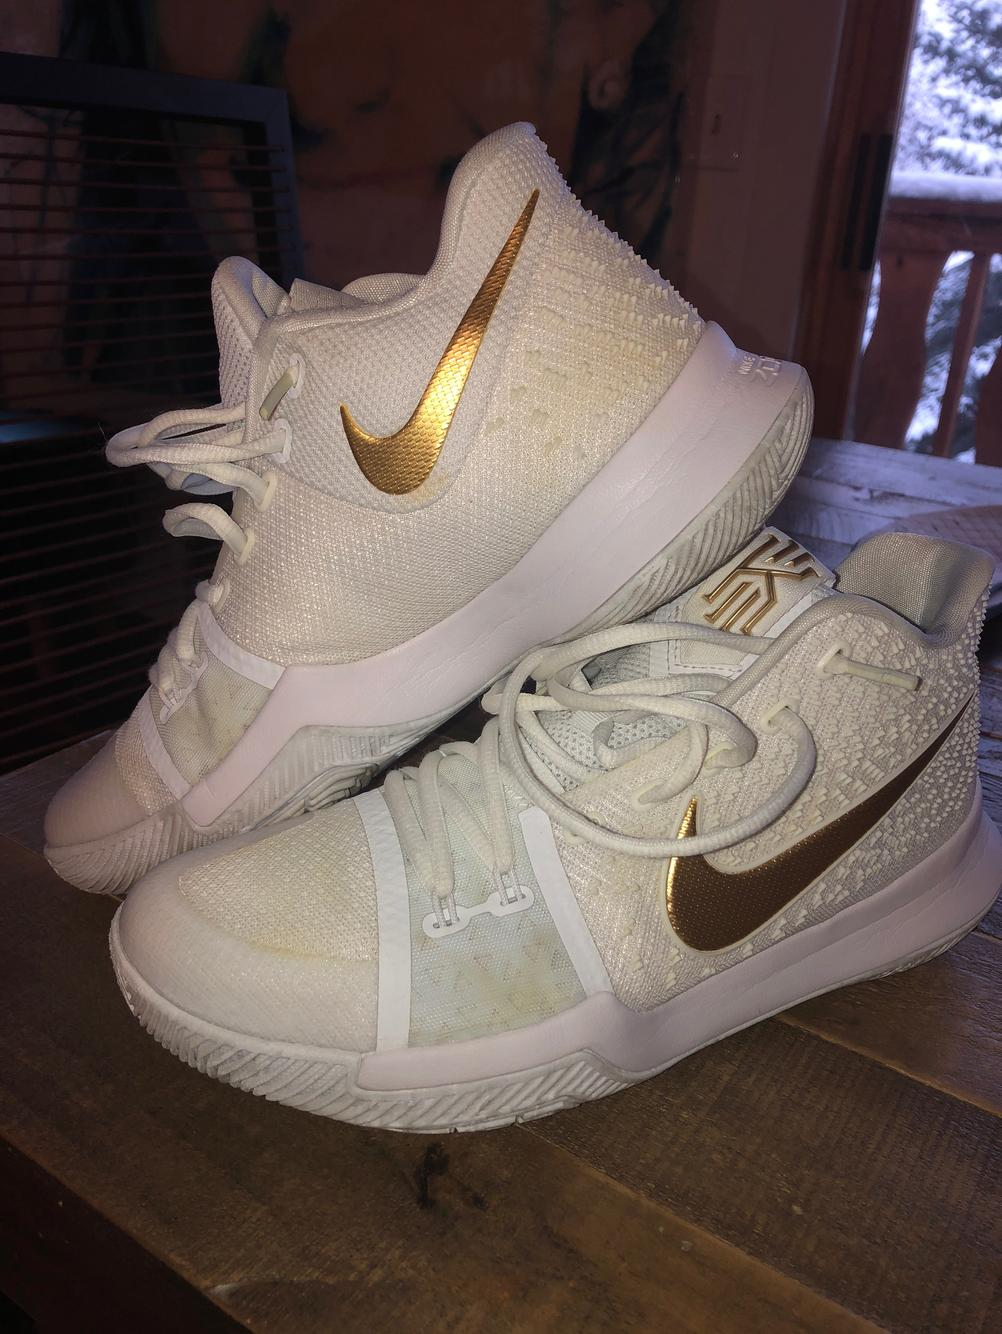 Nike White/Gold Kyrie 4 | Basketball Shoes